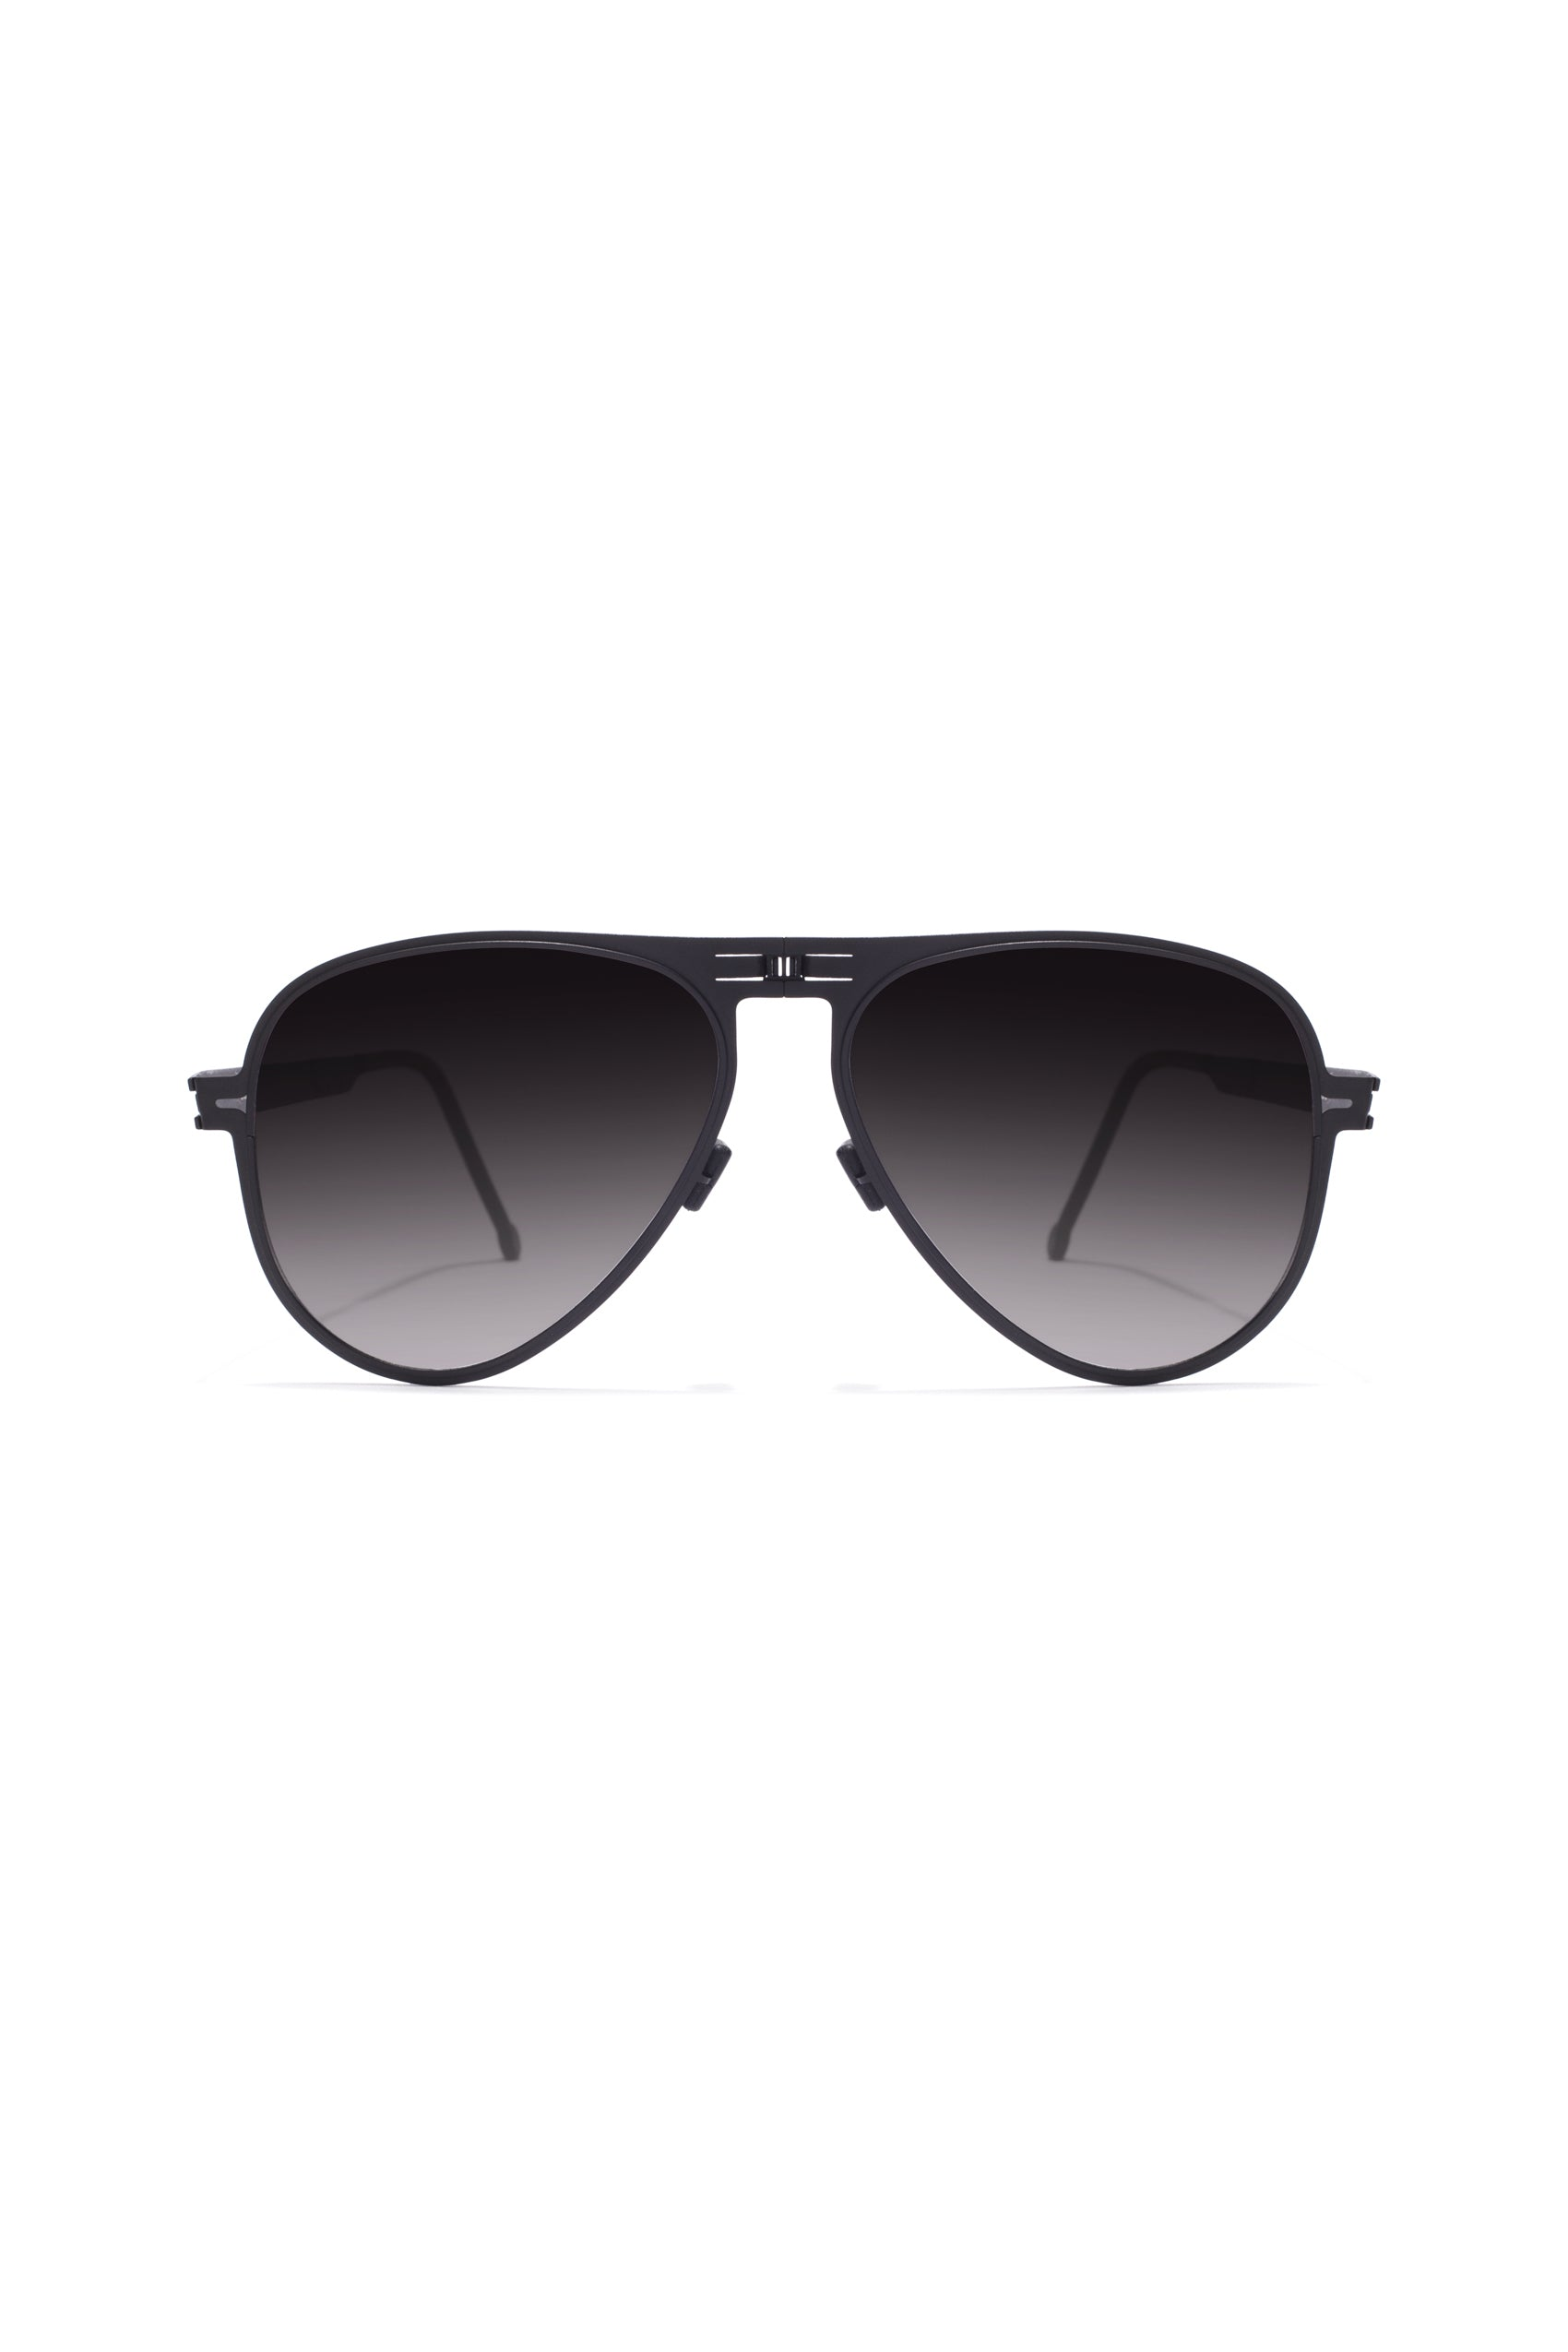 ROAV Sunglasses - Atlas